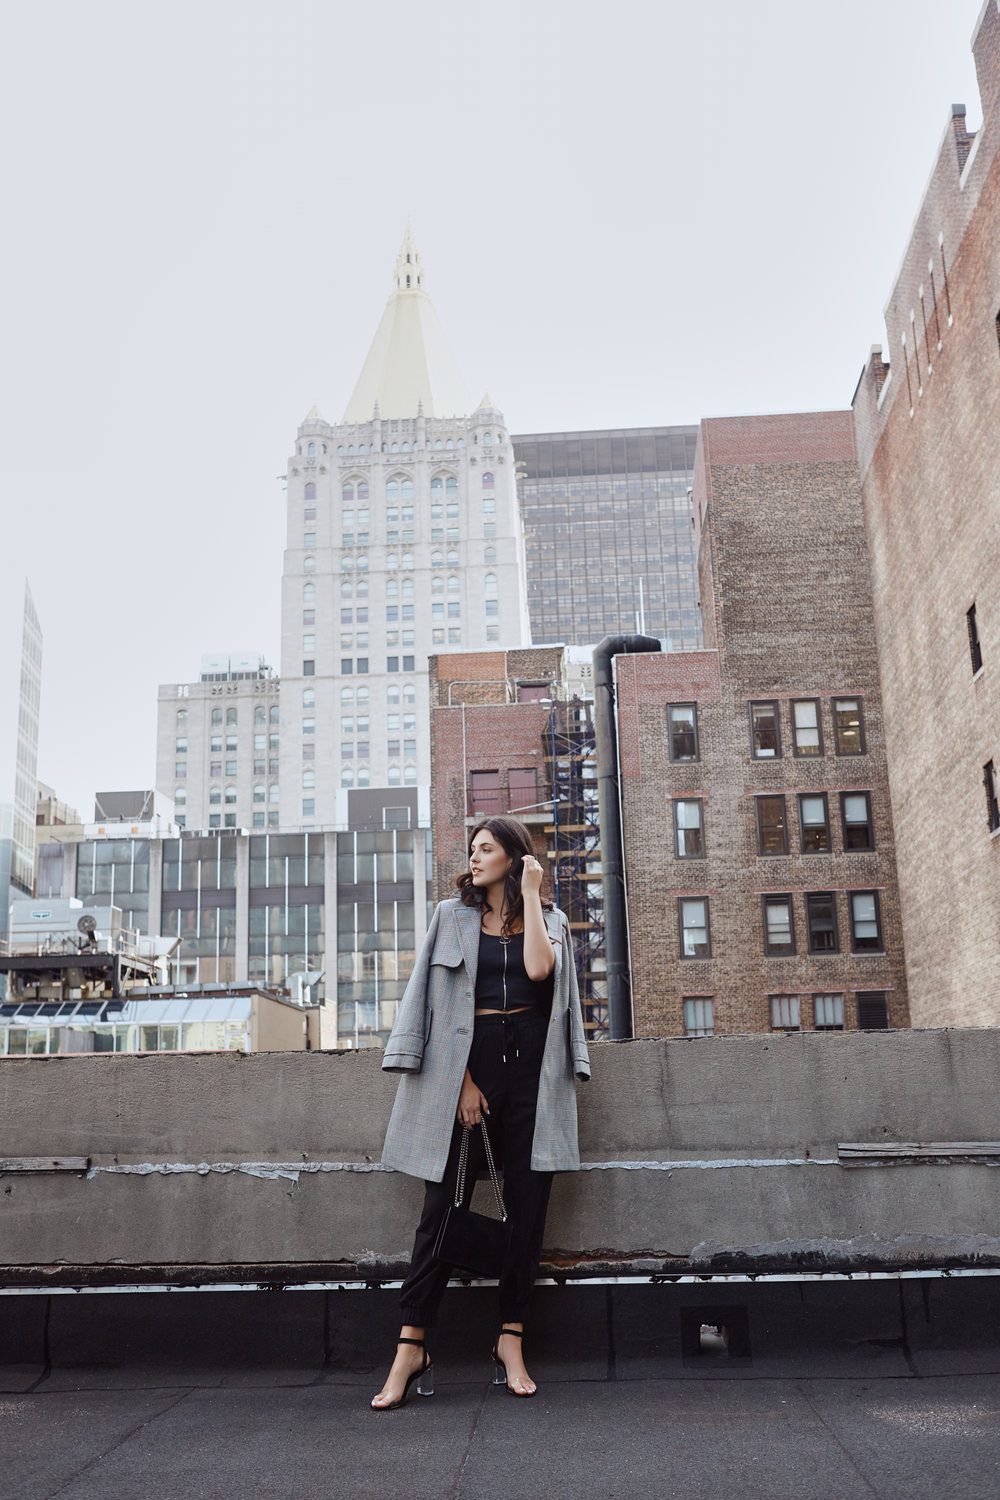 NYFW Recap #2 Julia Friedman at the Redbury NY wearing a Topshop coat.